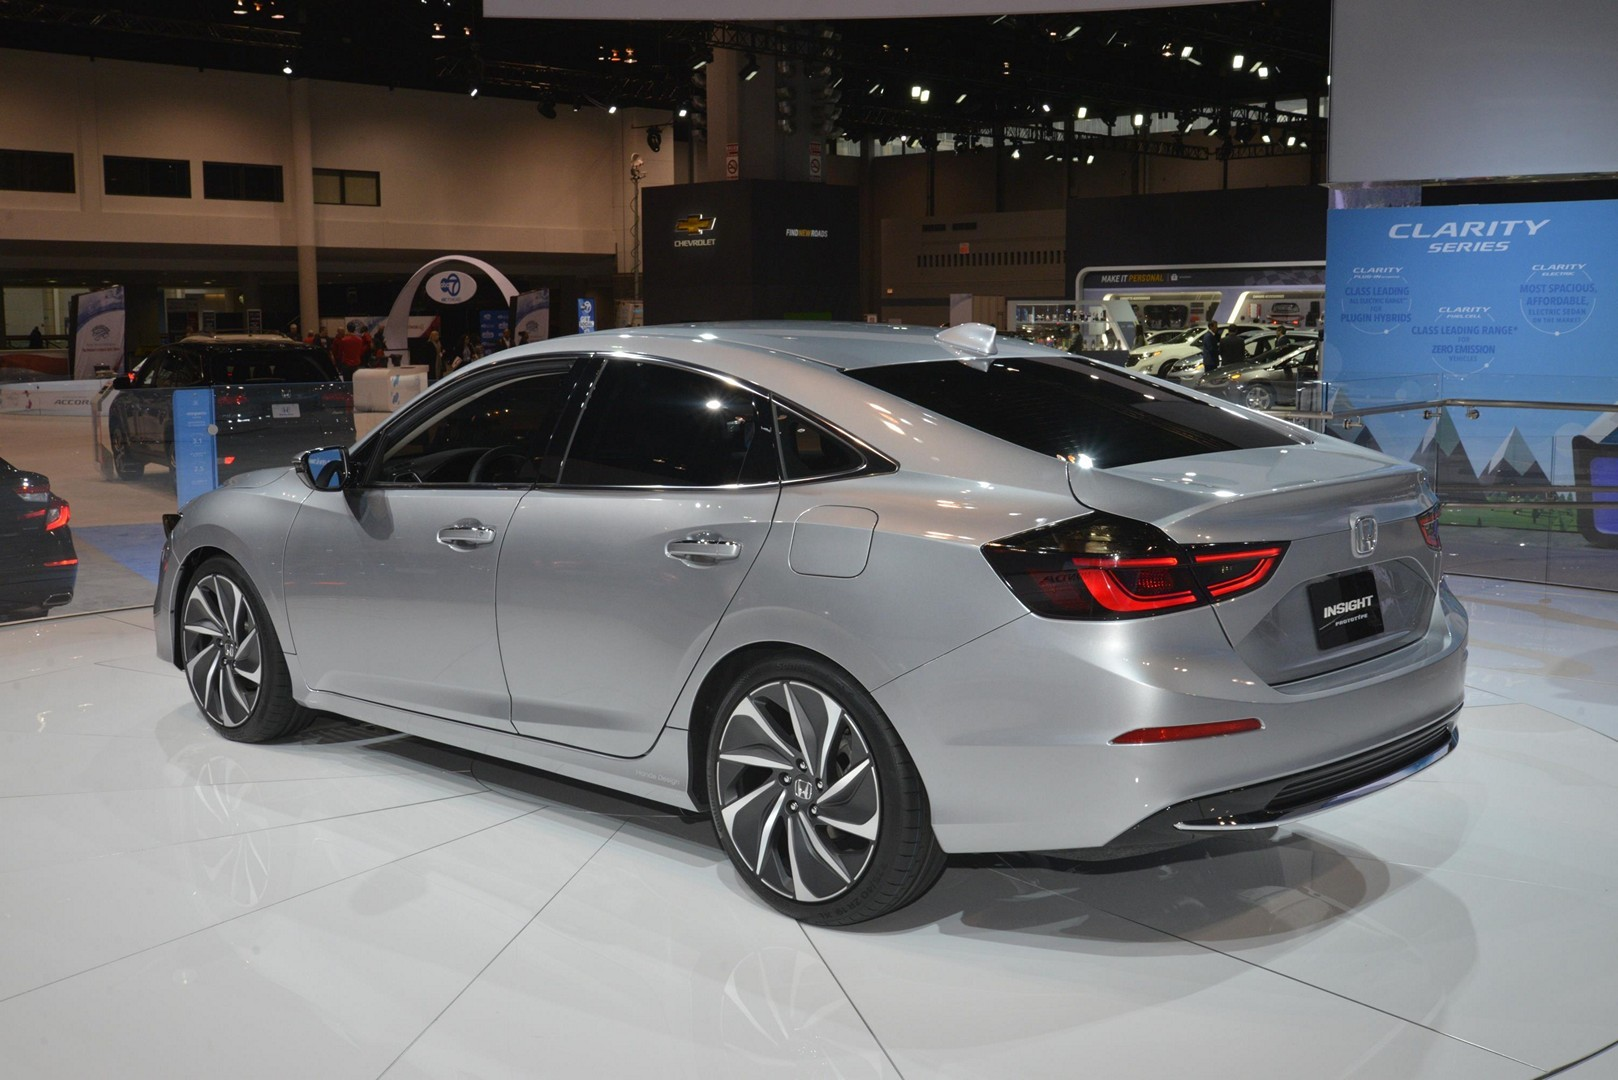 Junk Cars Chicago >> 2019 Honda Insight Prototype In Detail at the Chicago Auto Show - autoevolution